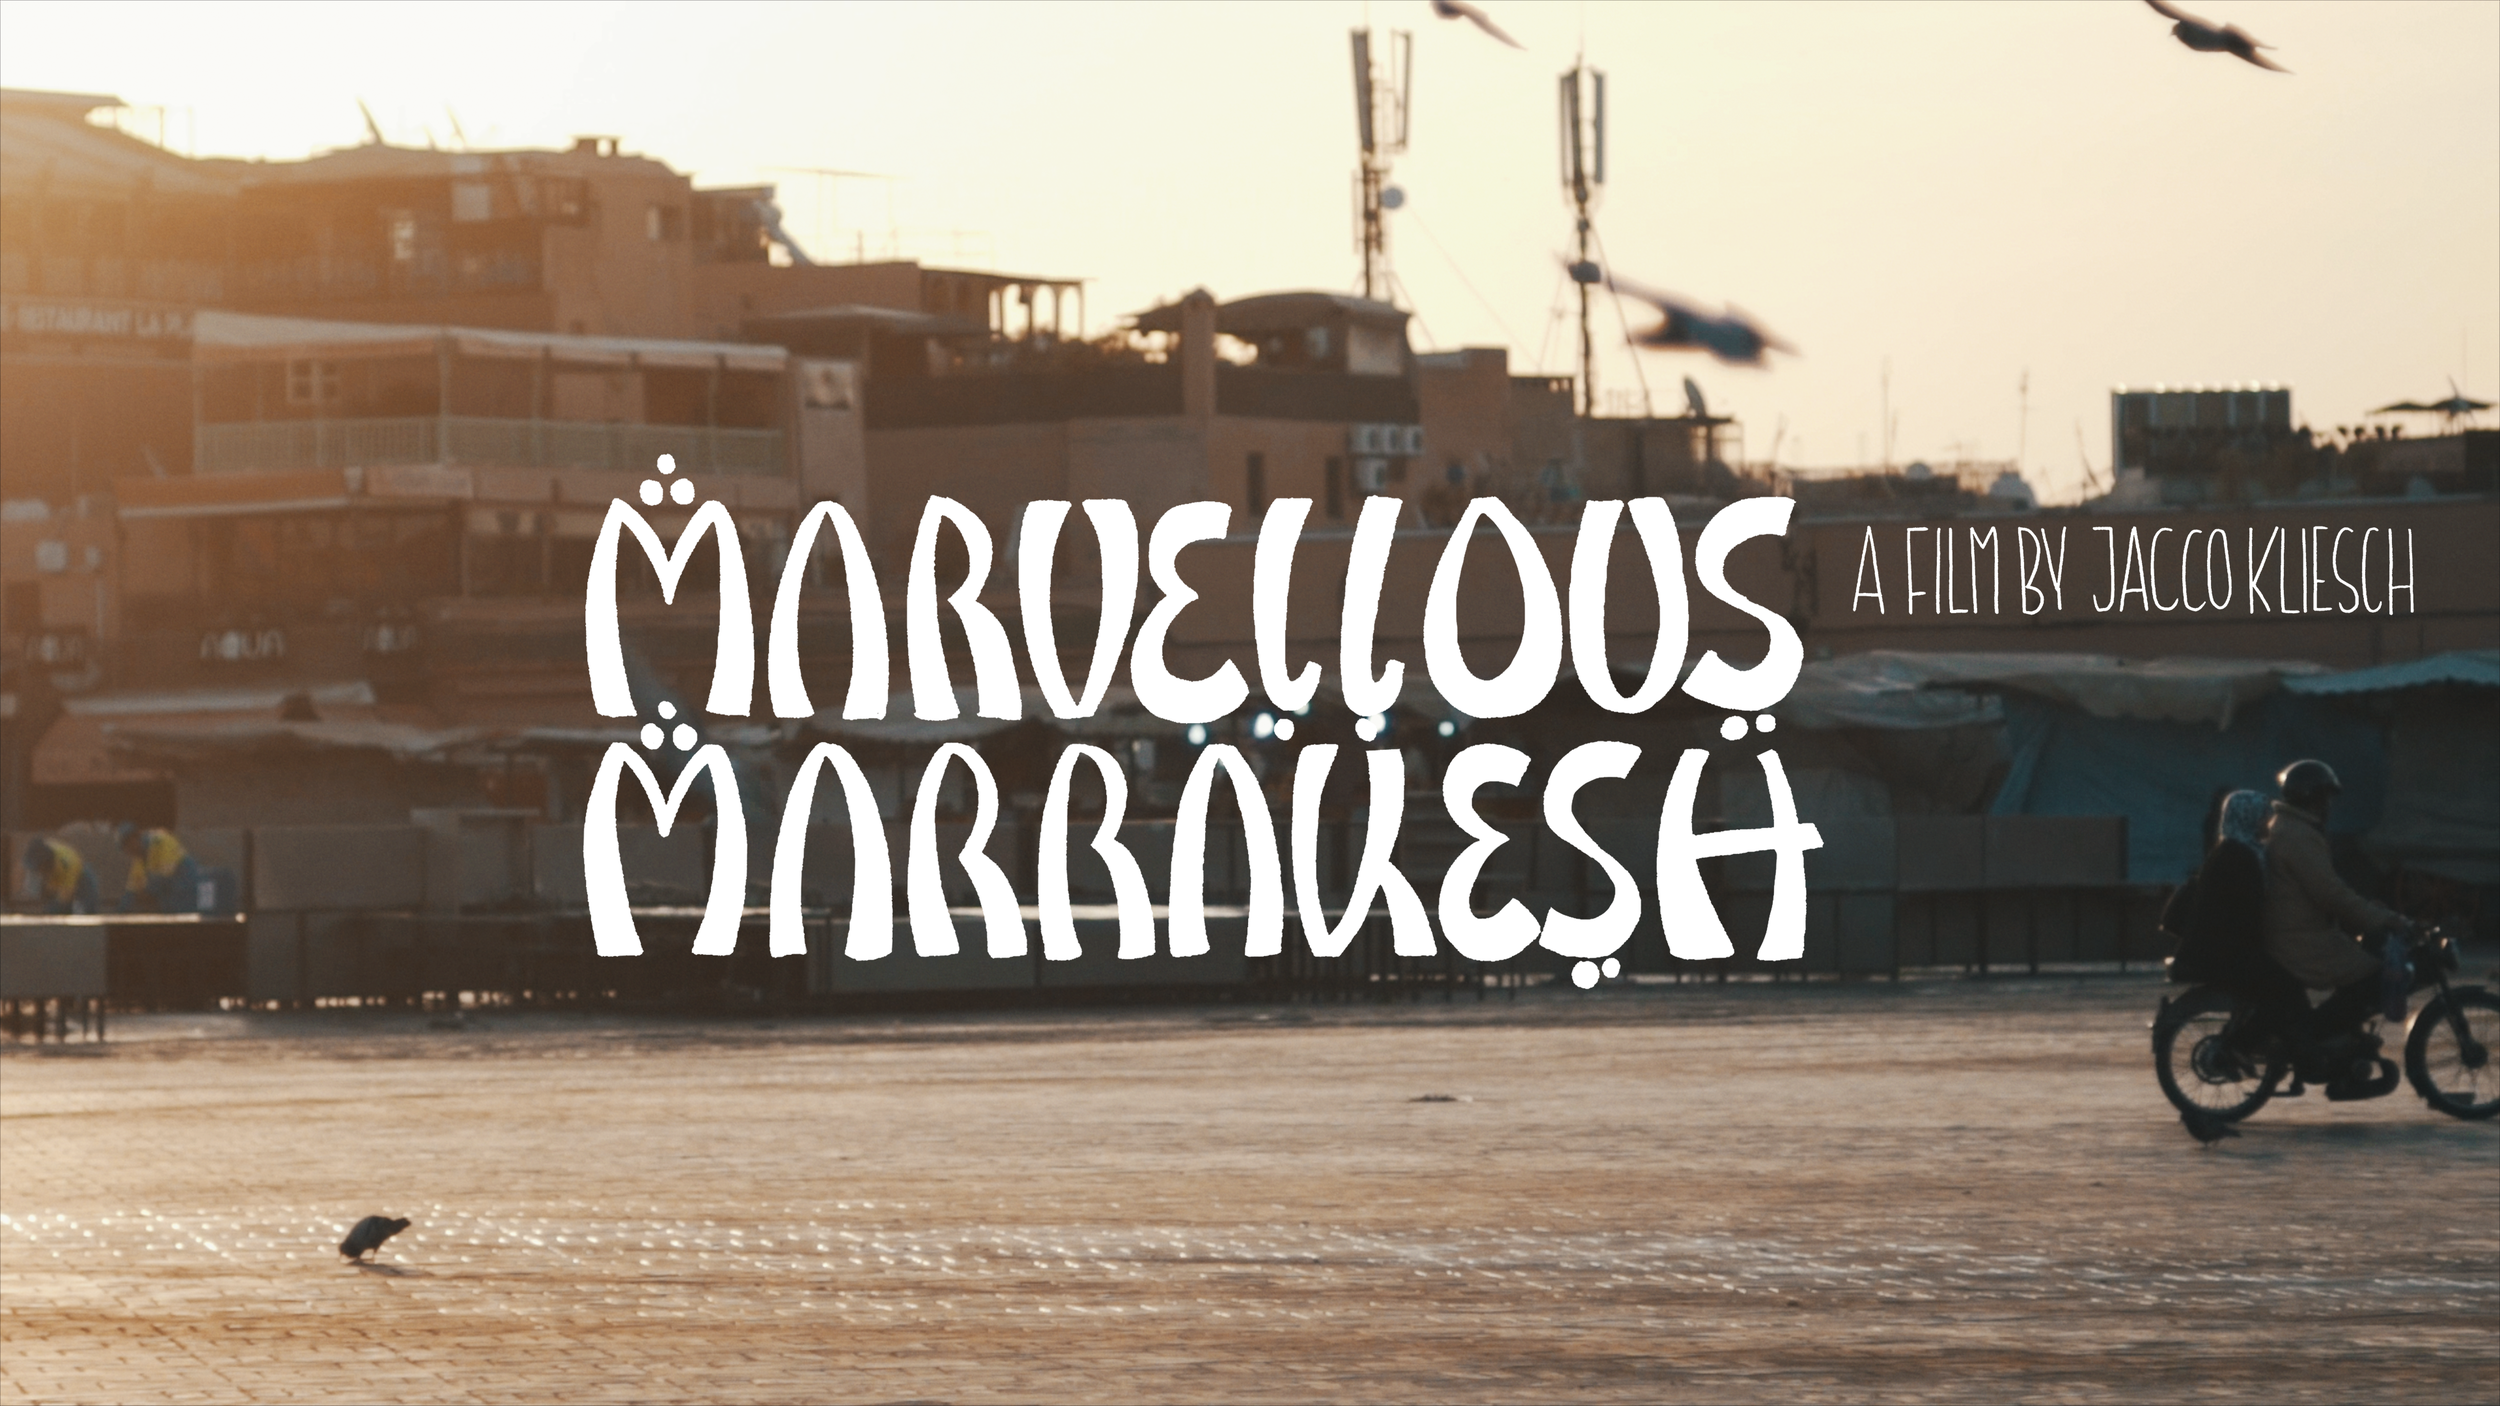 Marvellous Marrakesh - A collection of audiovisual moments from a trip to Morocco.